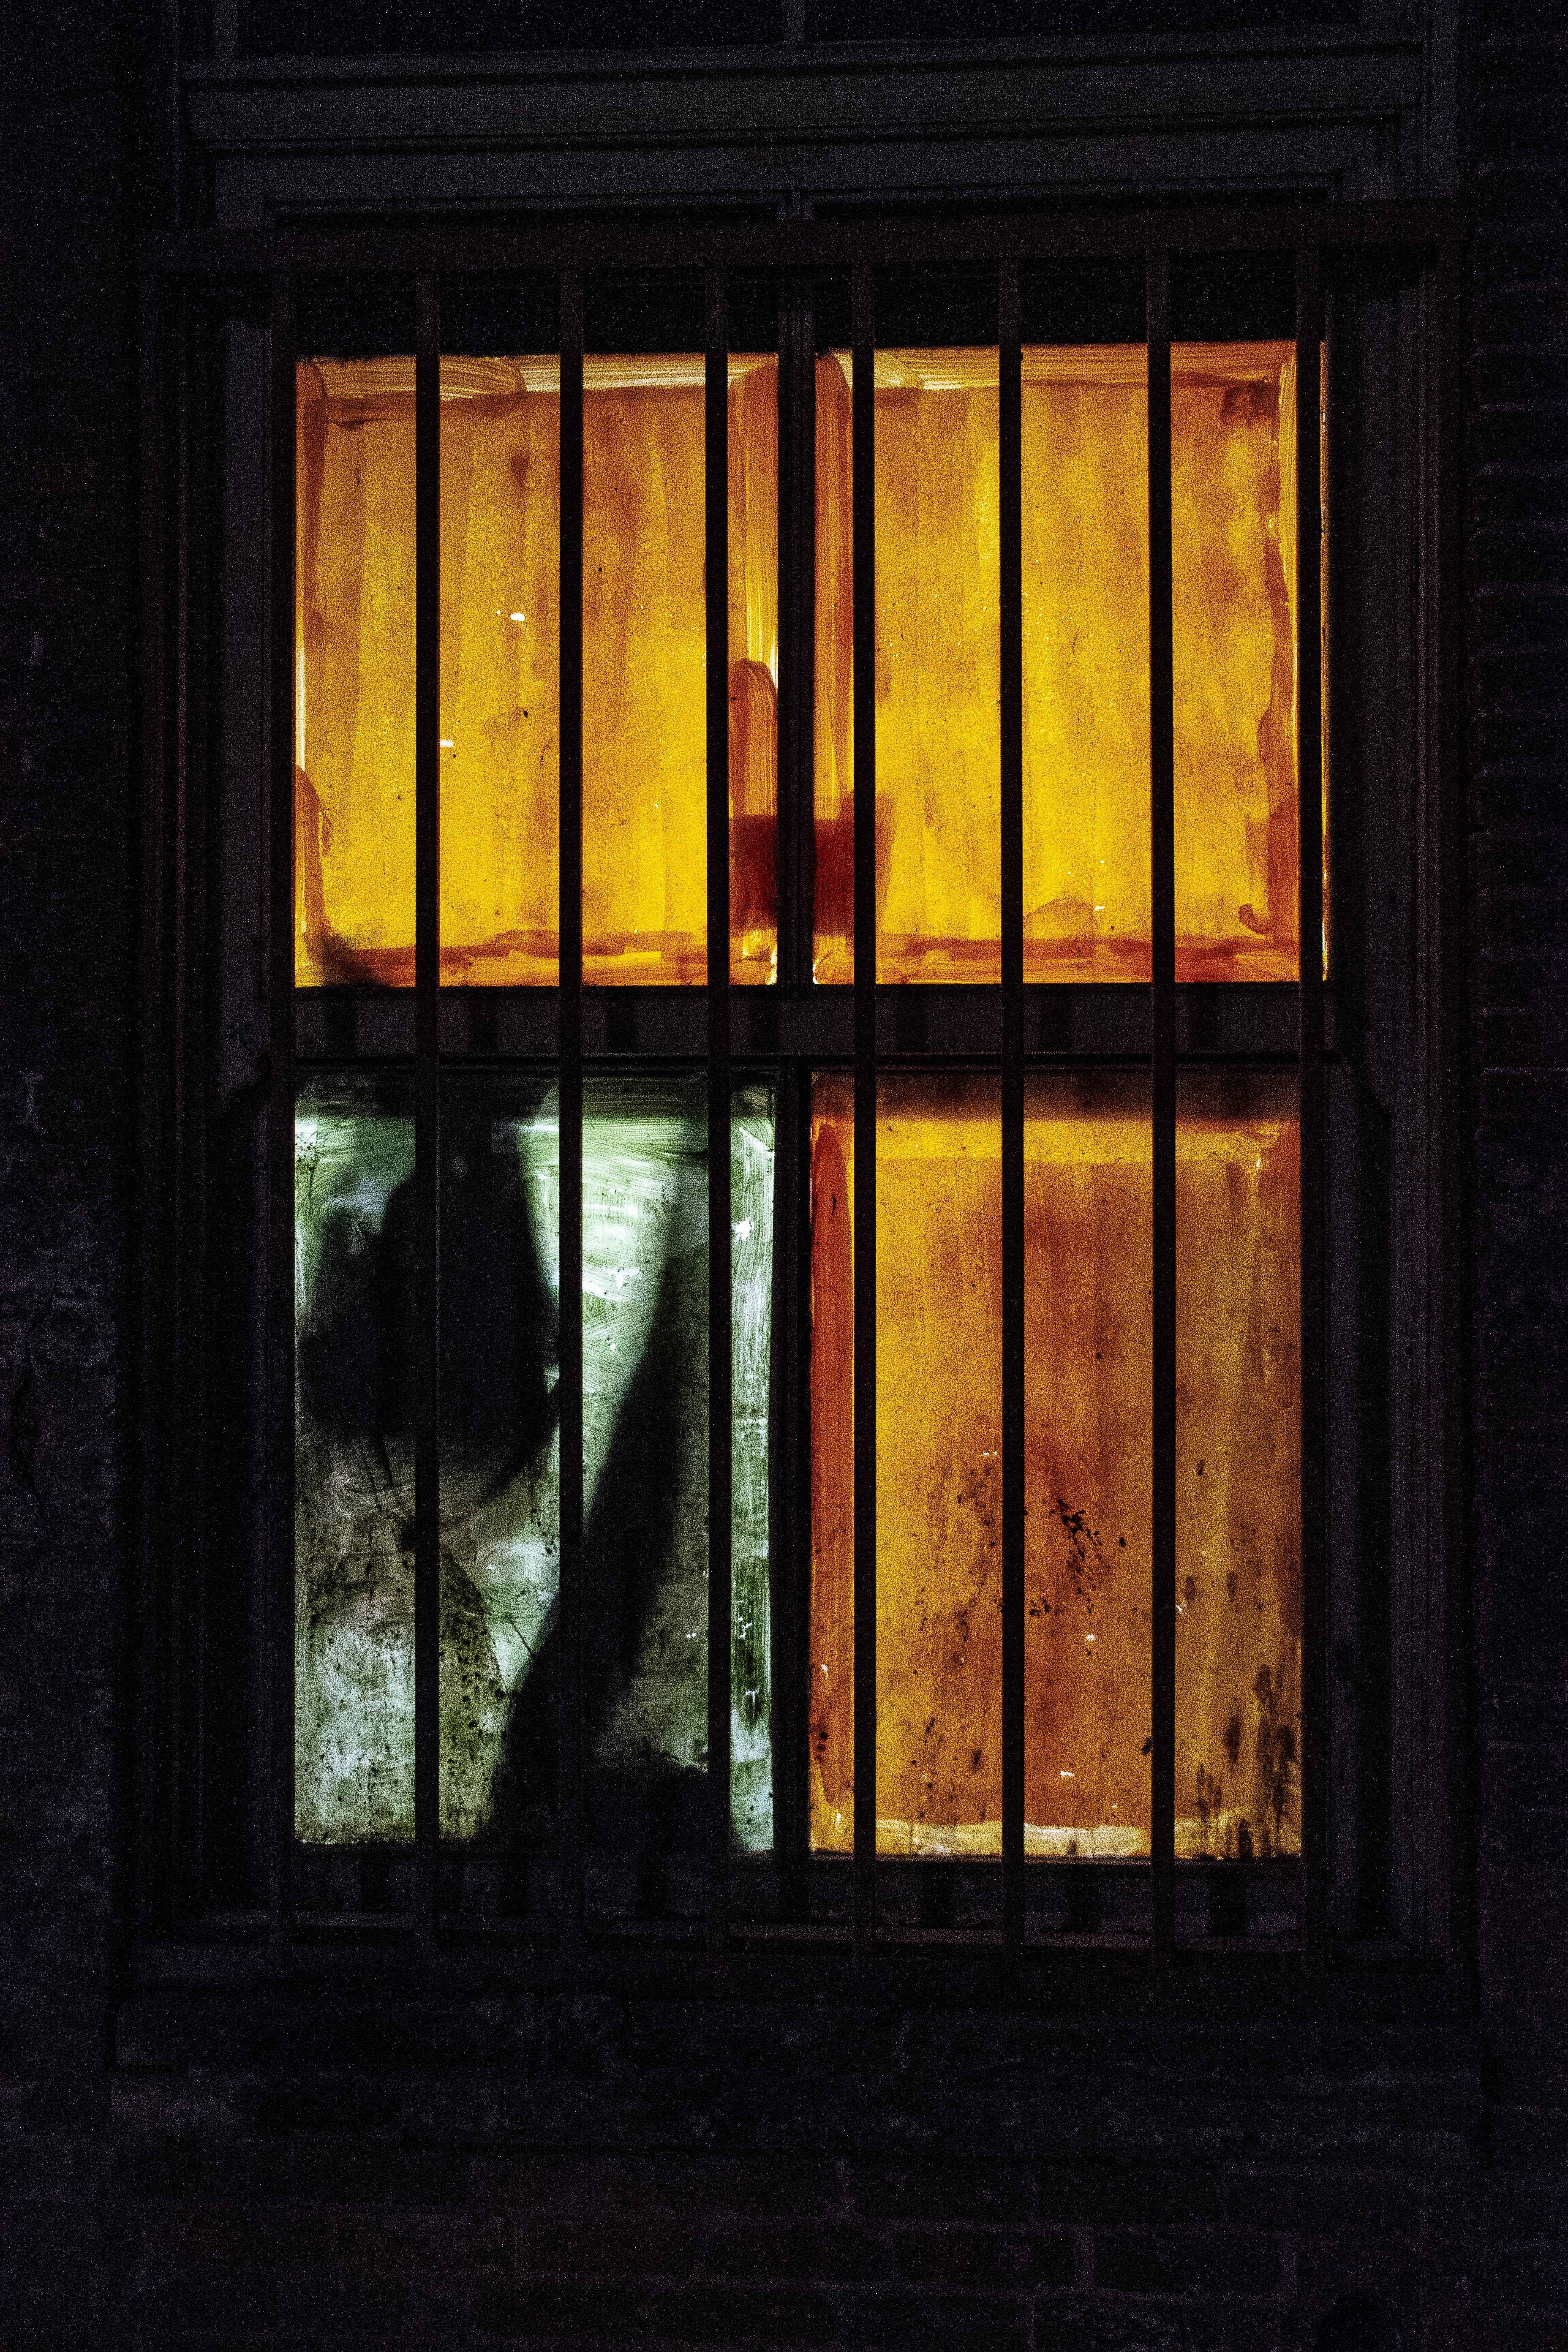 Window With Grills